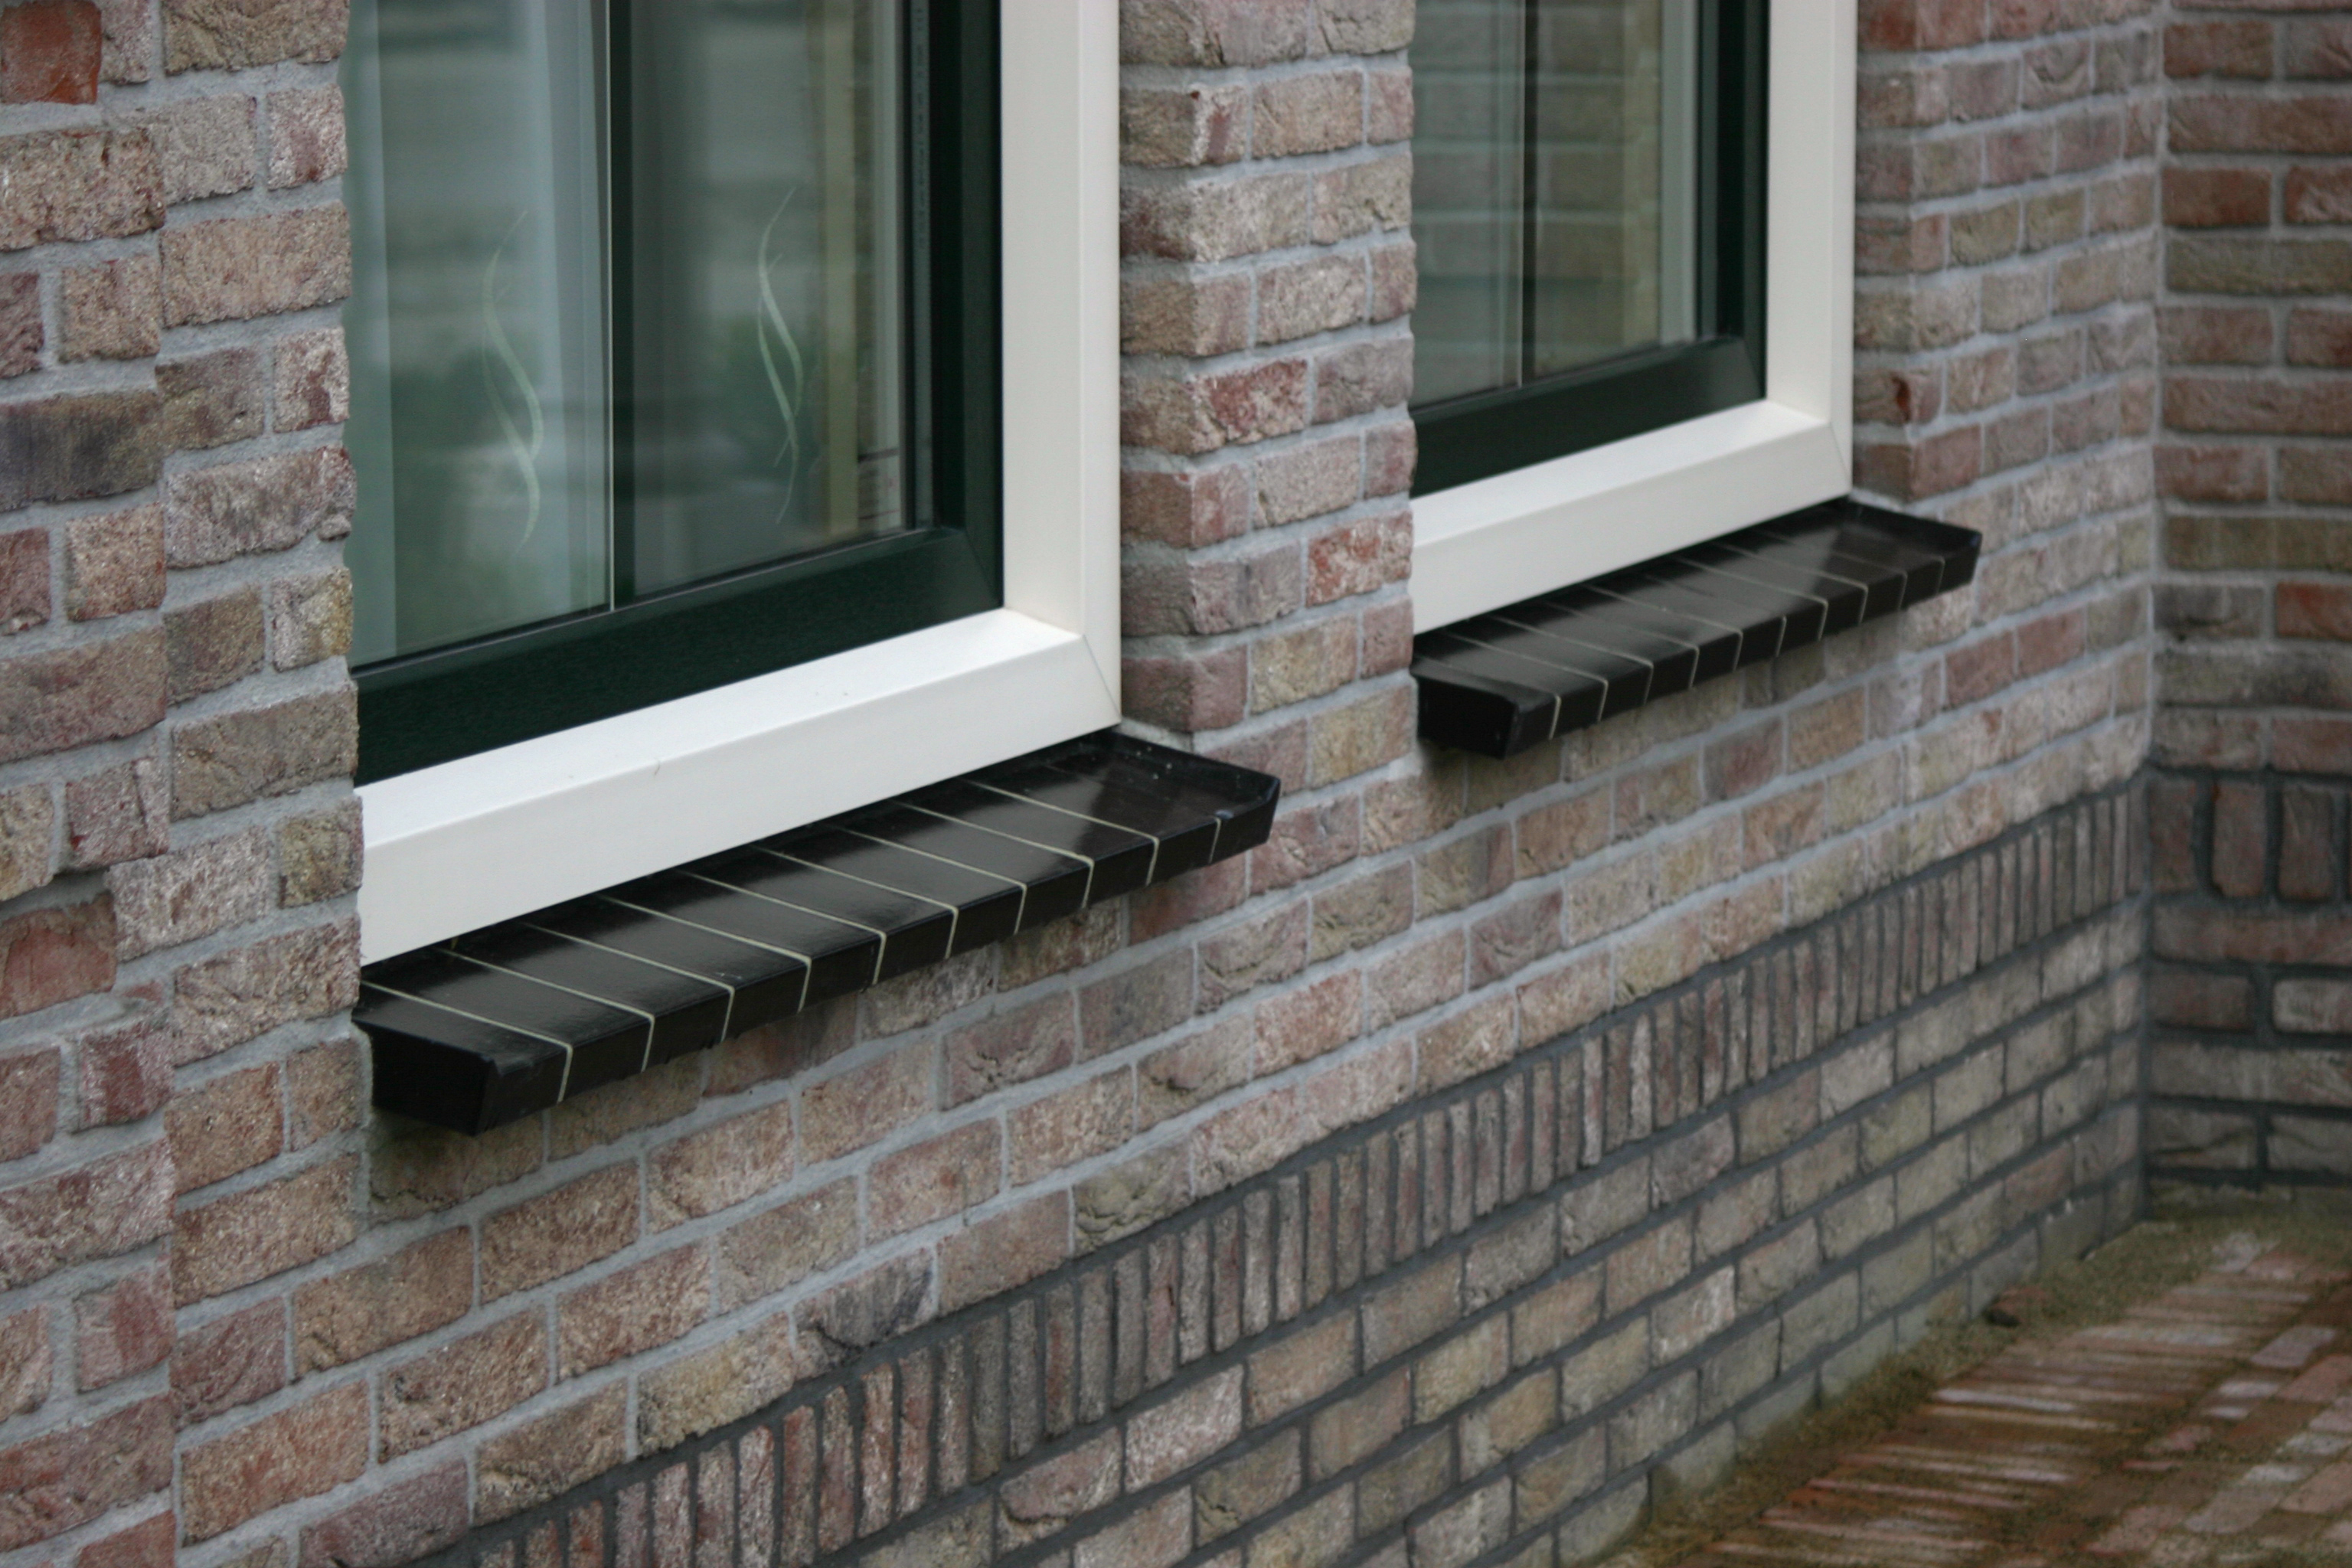 Klinkers Antraciet Window Sill Brick - St. Joris - St. Joris